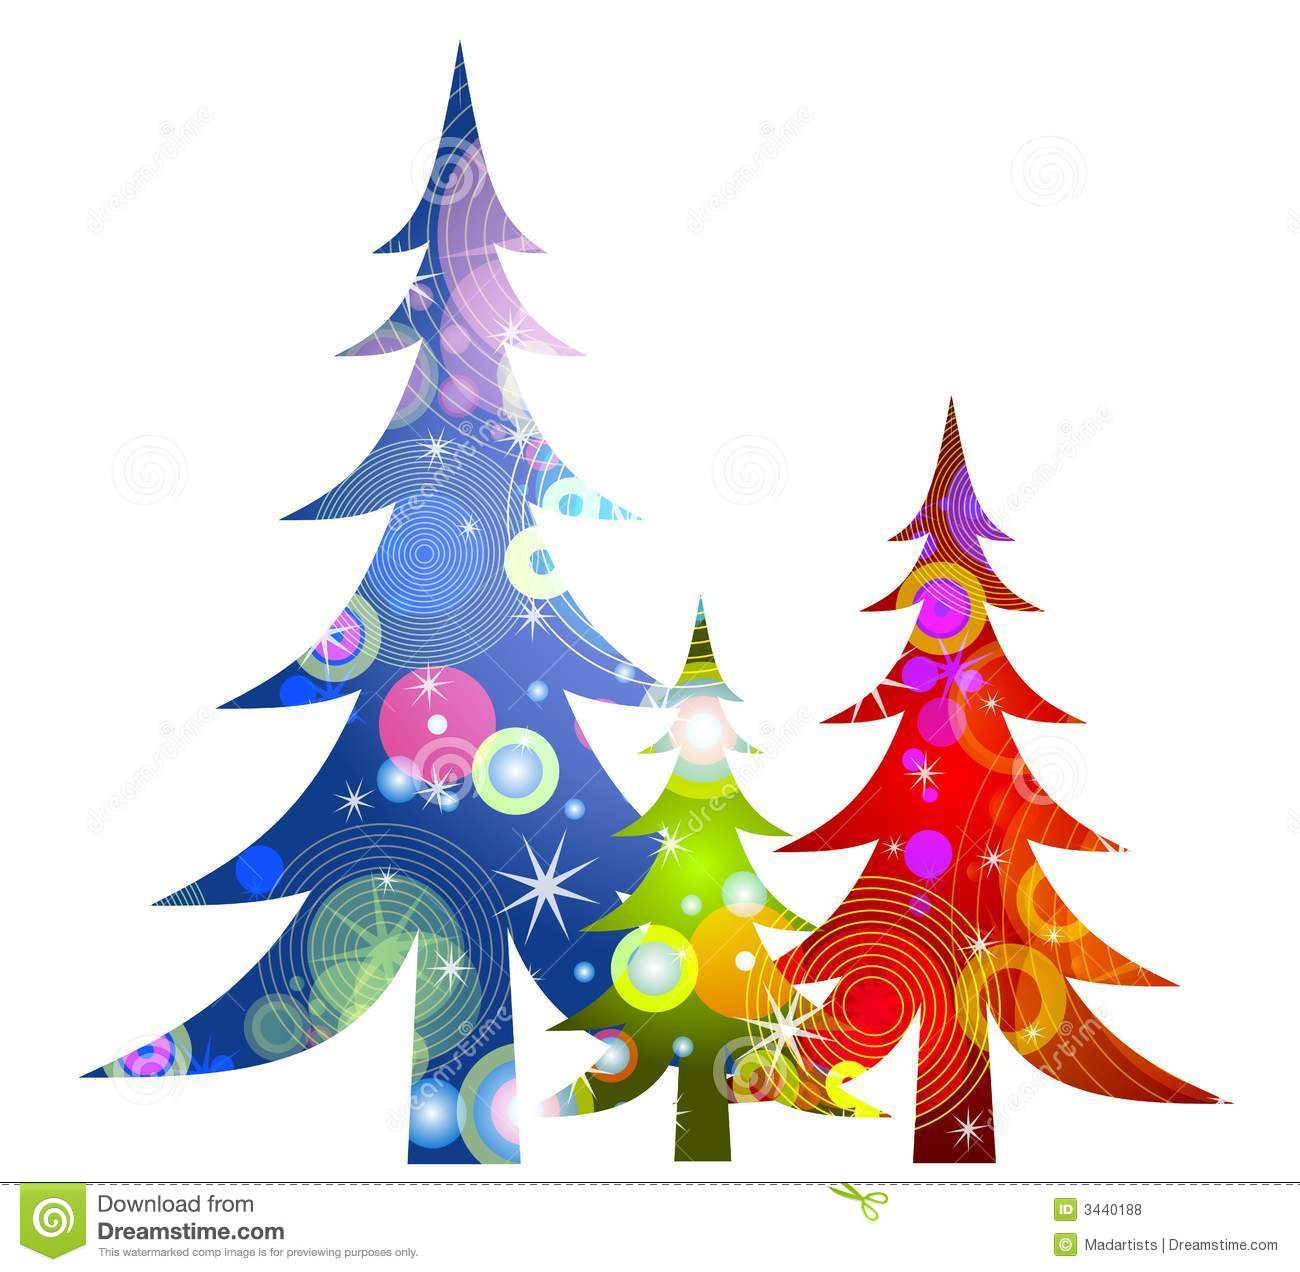 Retro Christmas Trees Clip Art Royalty Free Stock Photos - Image ...